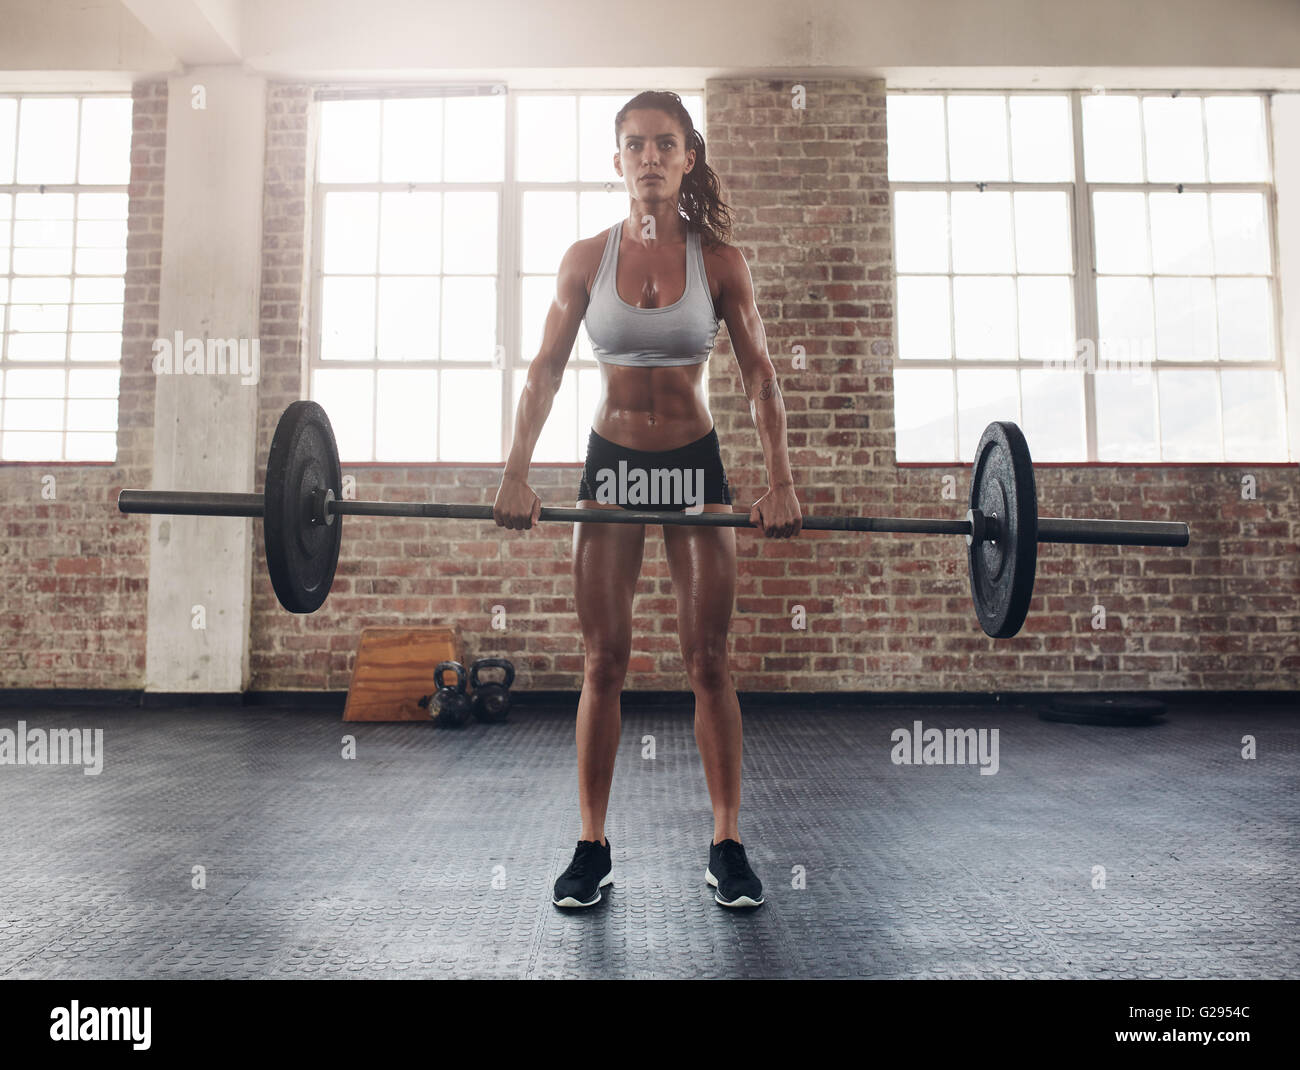 Full length image of tough young woman exercising with barbell. Determined female athlete lifting heavy weights. - Stock Image